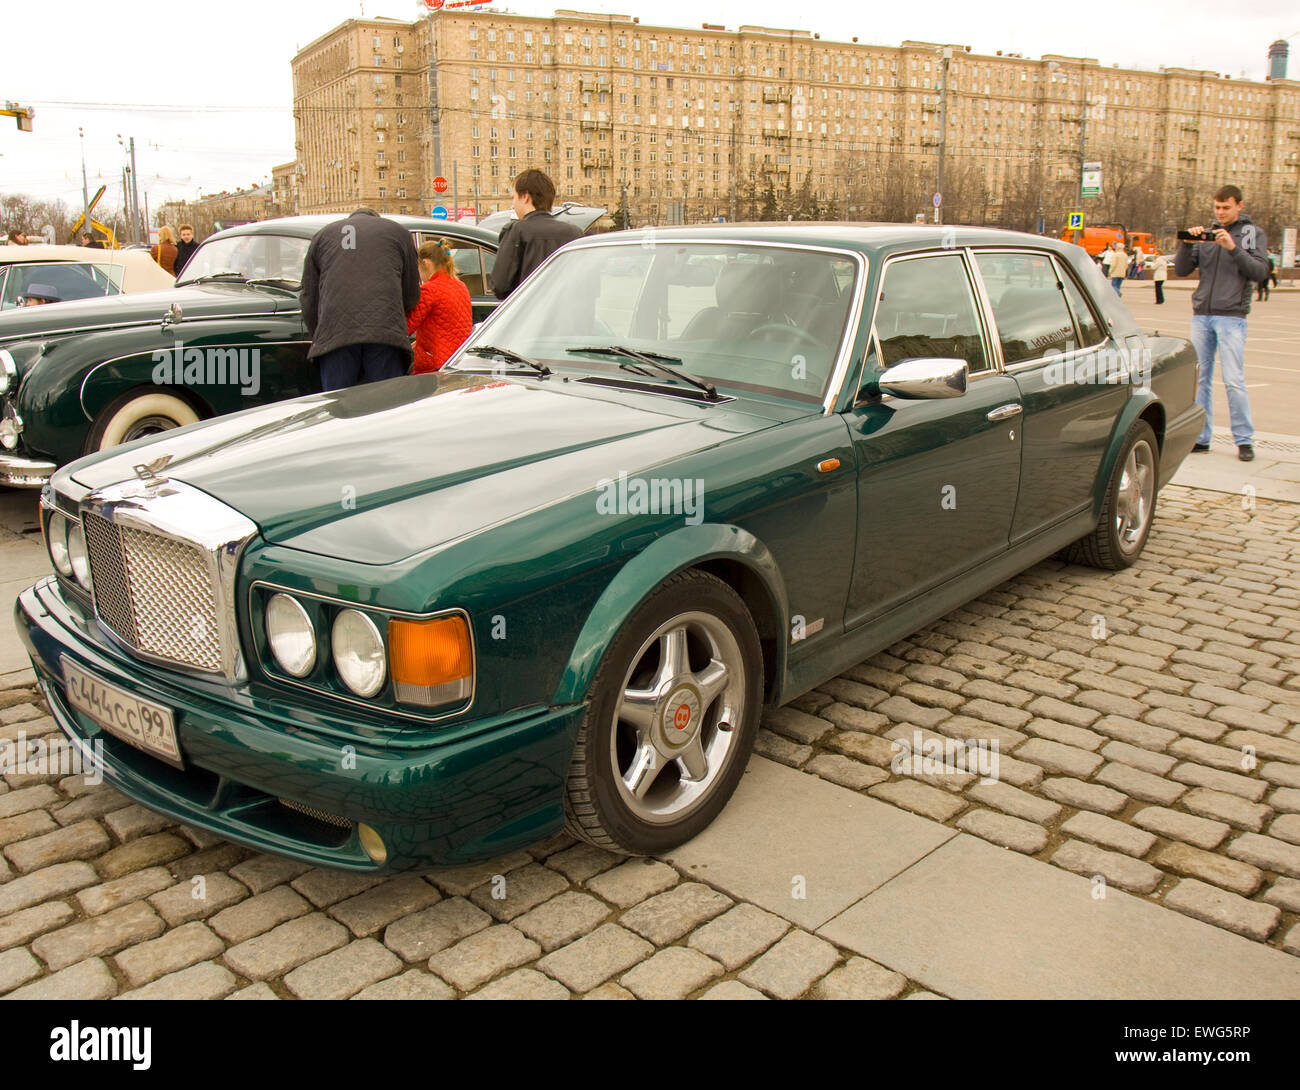 Classic Bentley Wedding Car: Old Fashioned Bentley Car Classic Stock Photos & Old